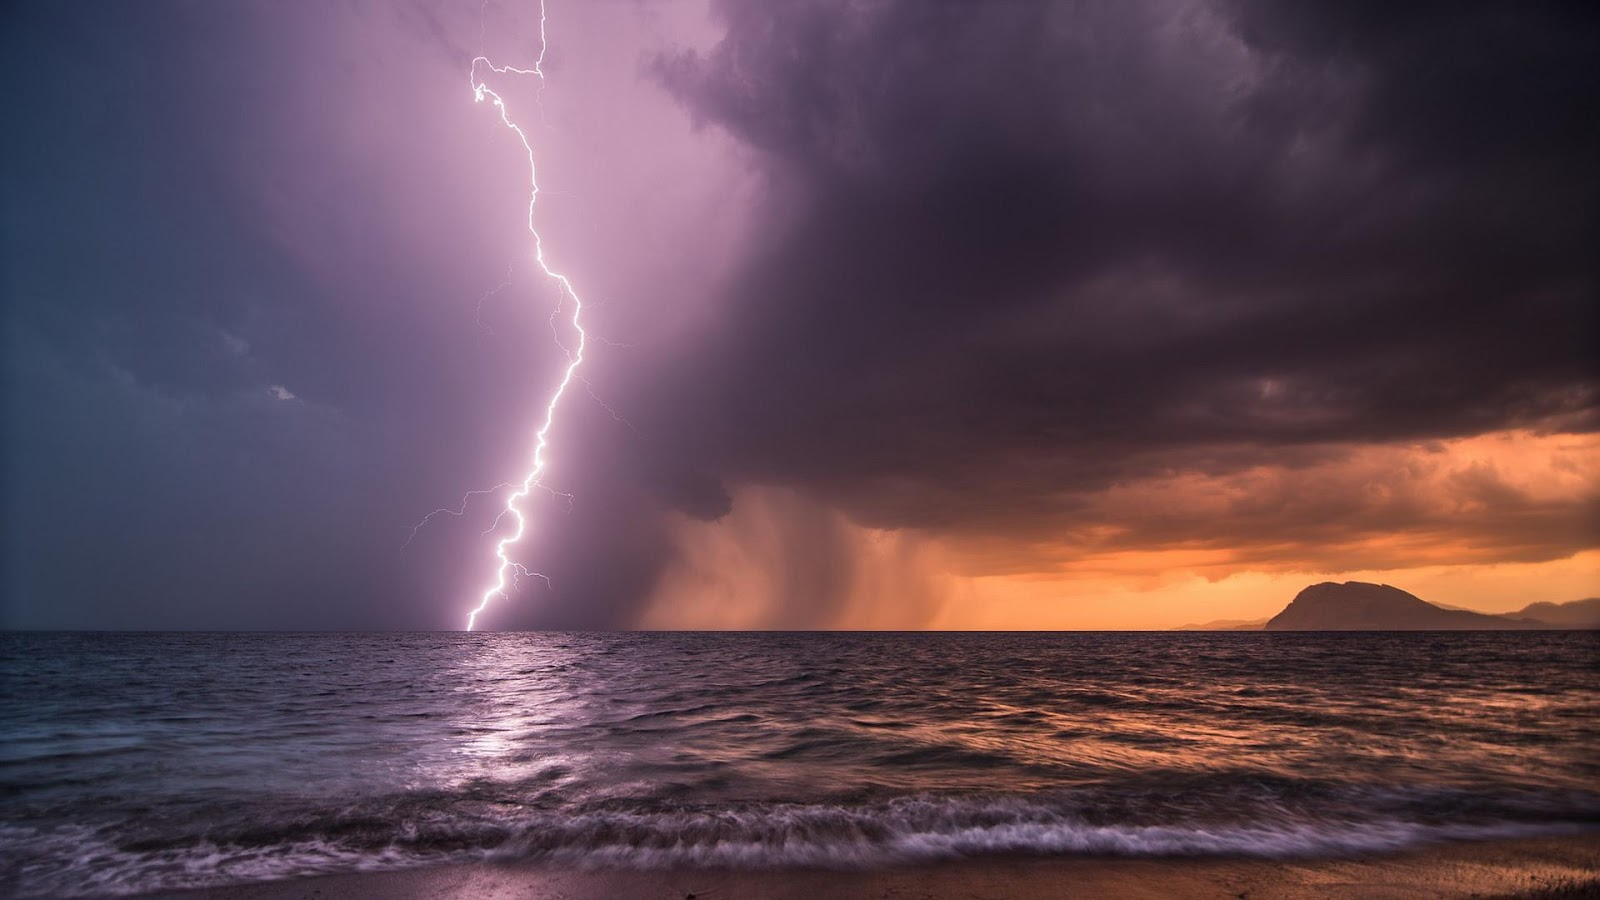 storm wallpaper hd   android apps on google play